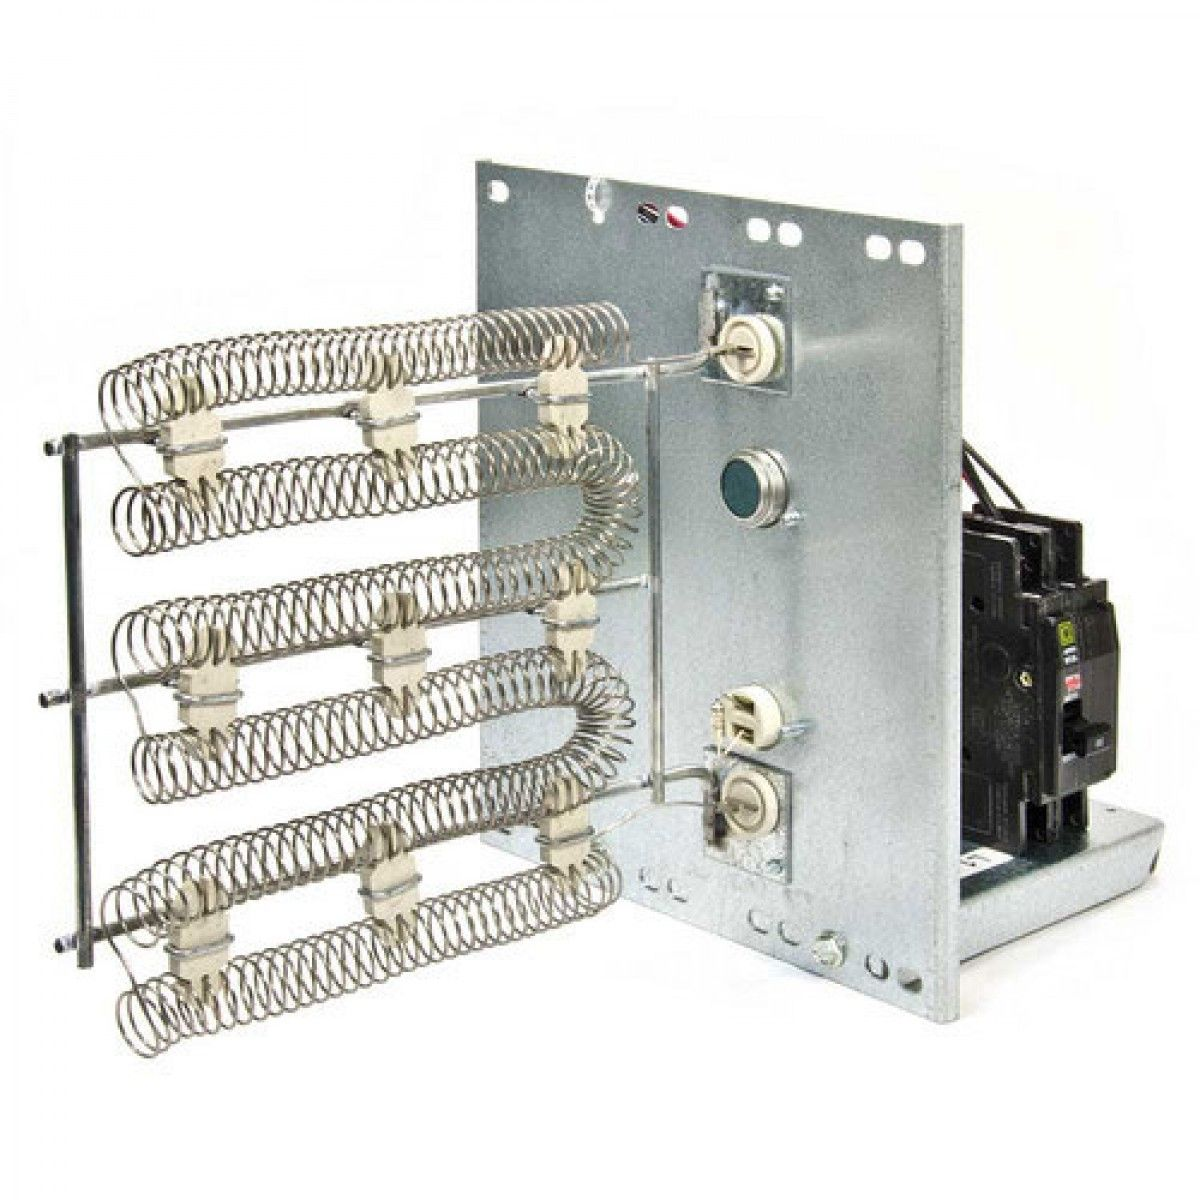 Goodman Hkp 10c 10kw Heating Element With The Breaker For